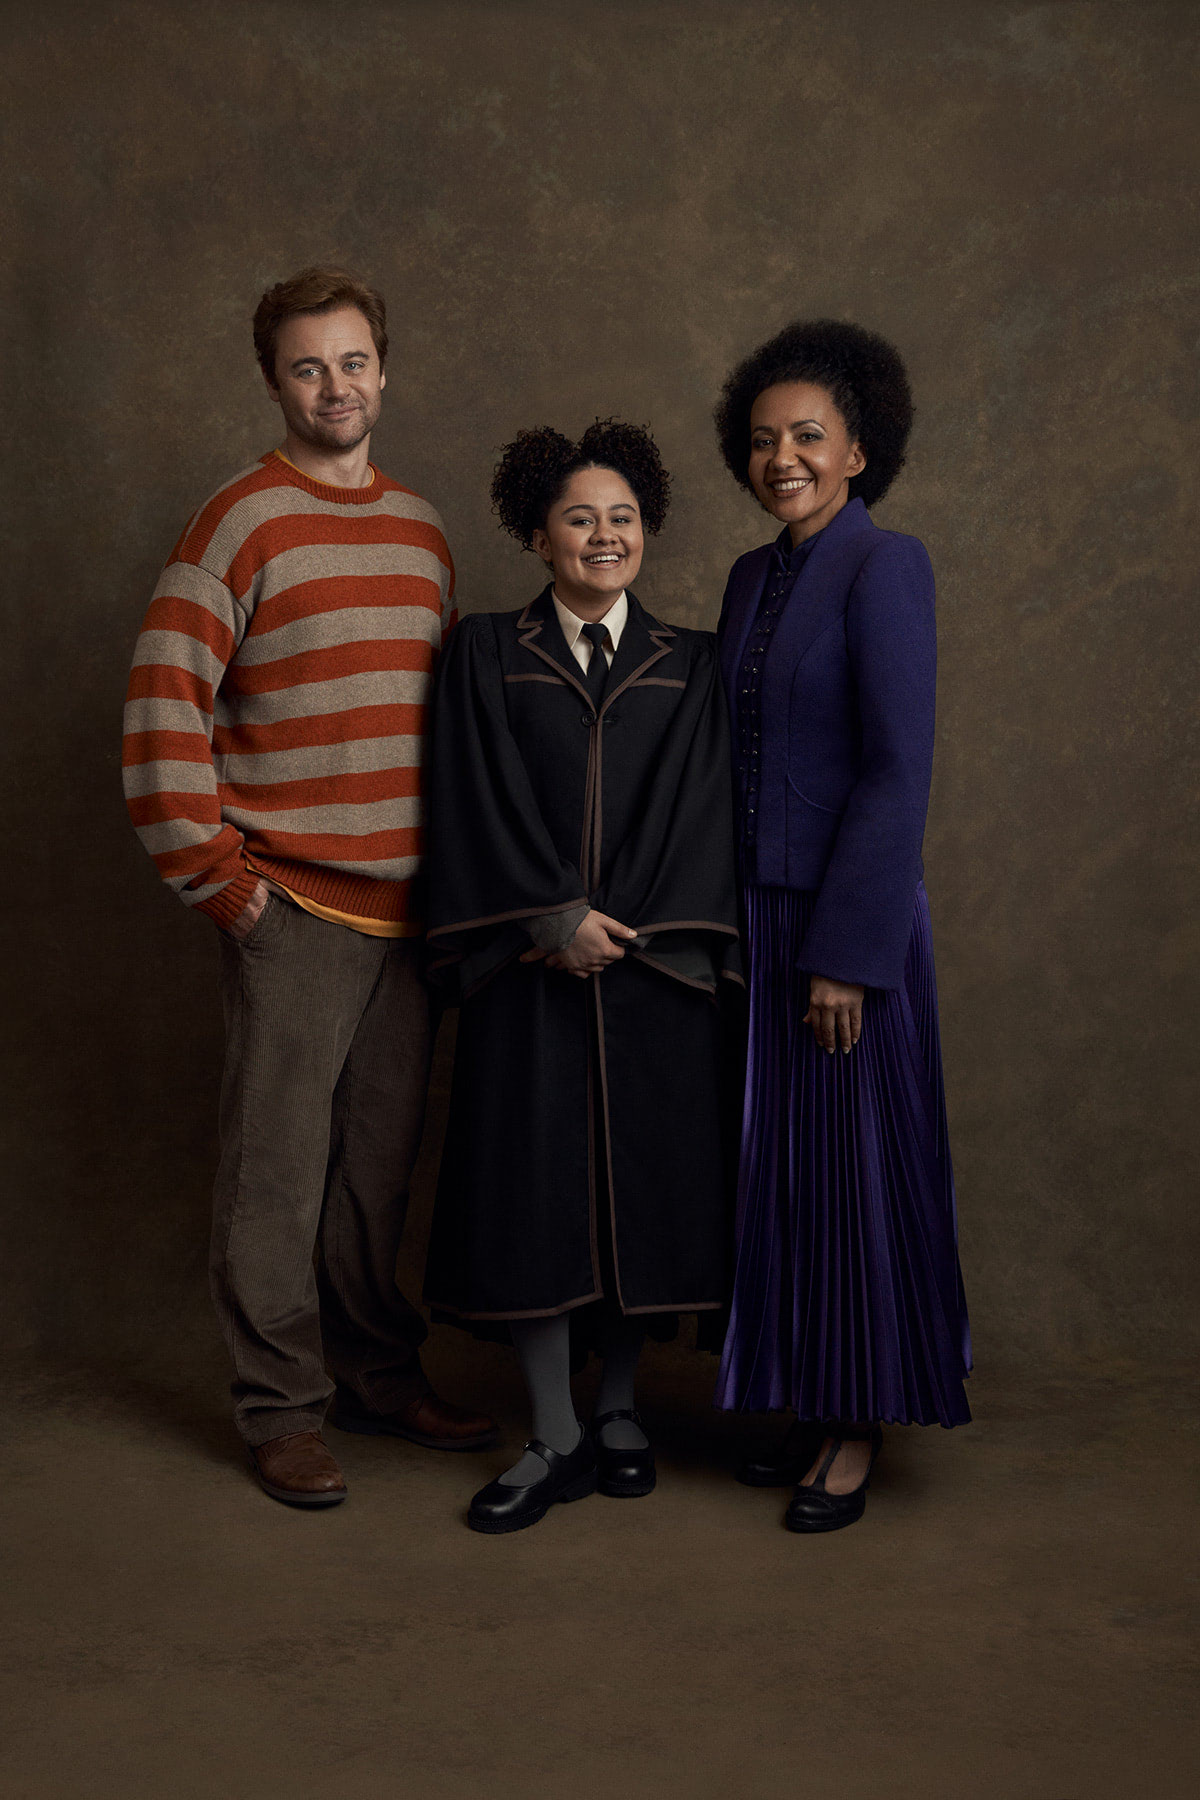 Weasley/Granger family ('Cursed Child' Australia)